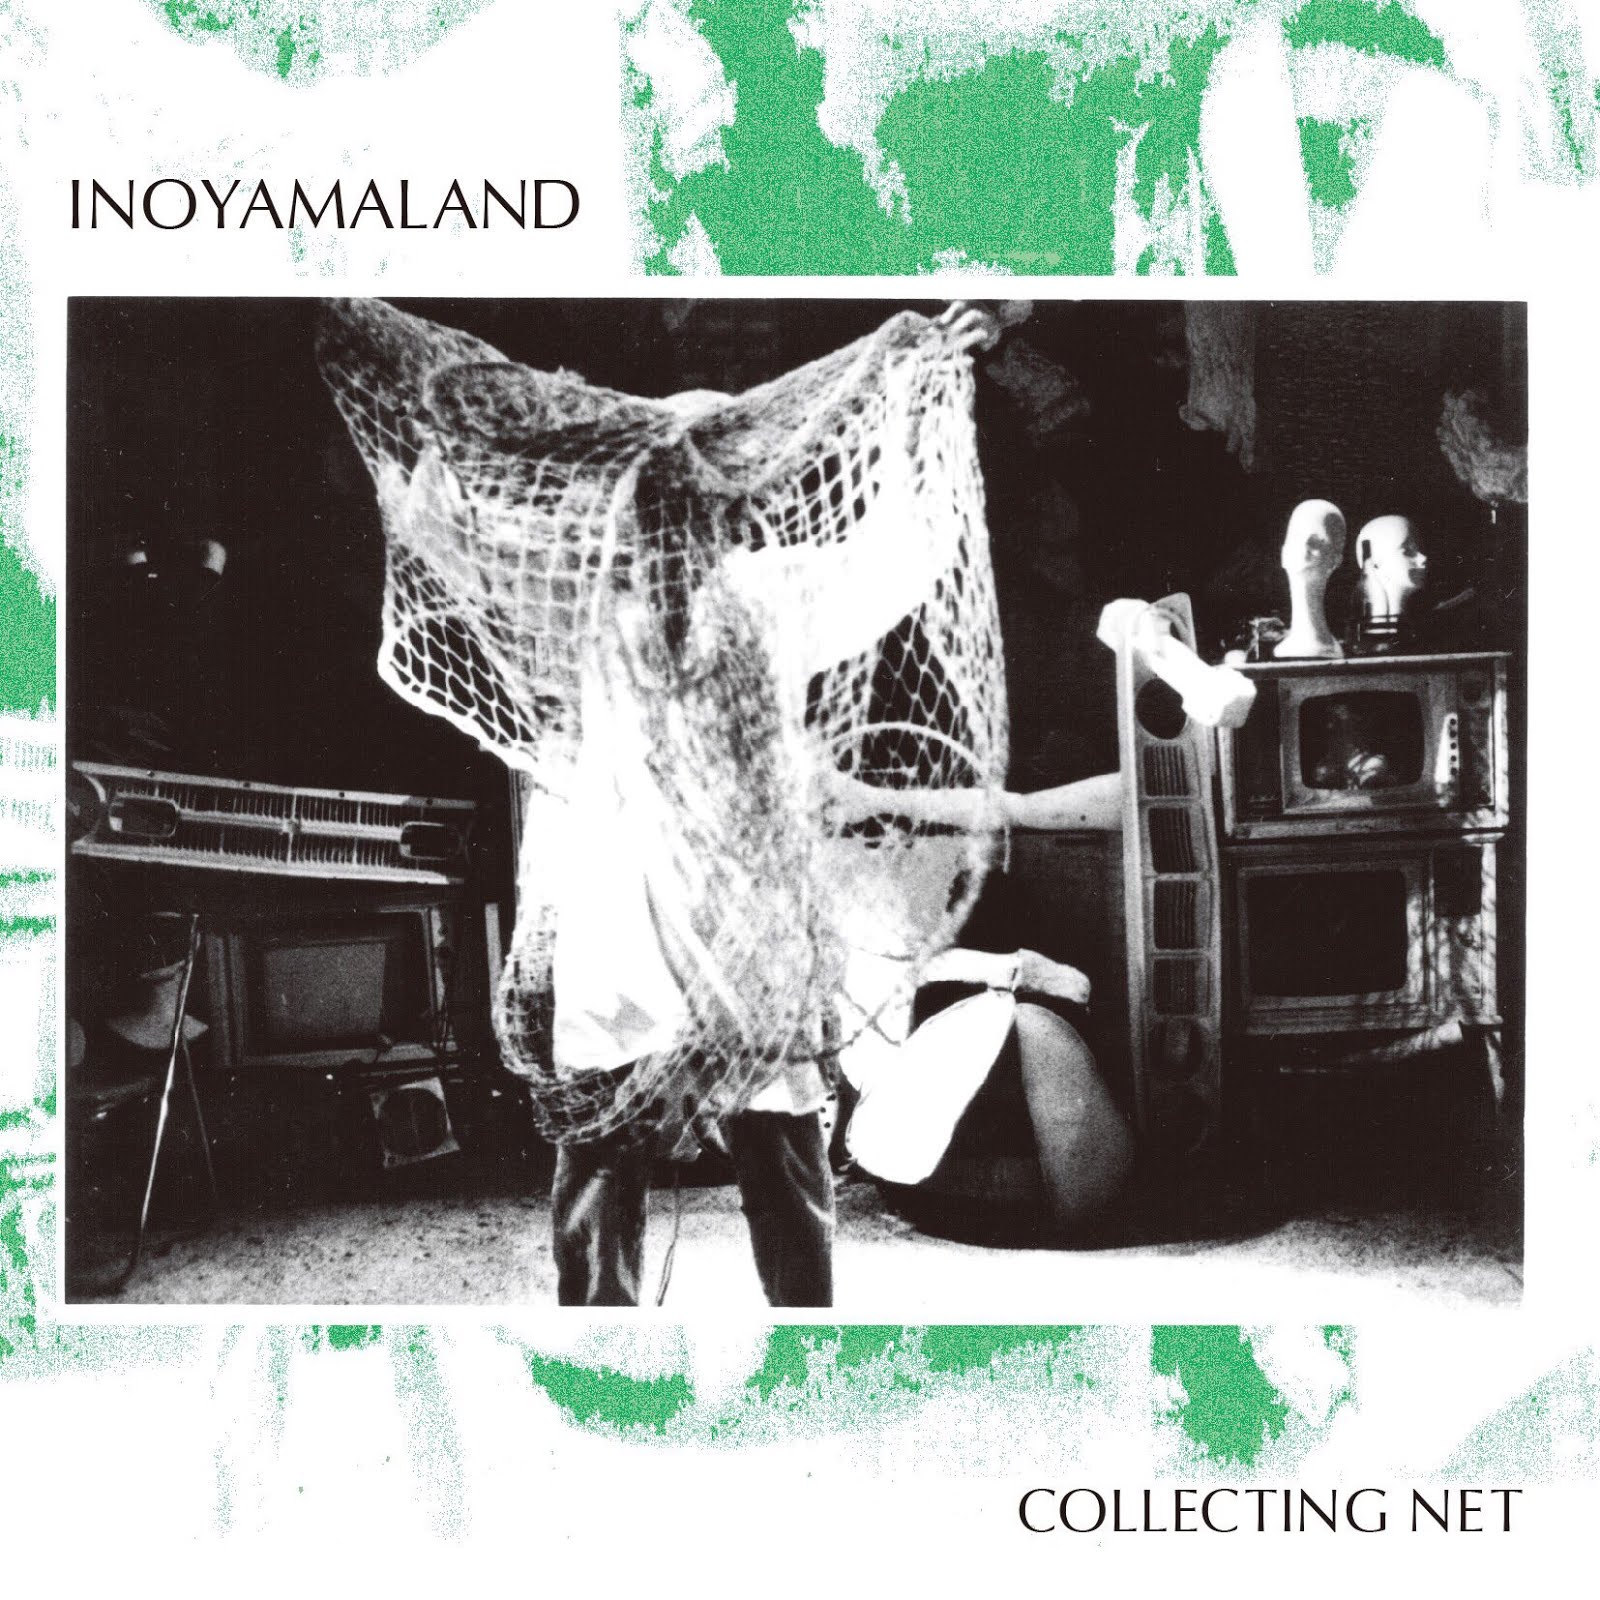 INOYAMALAND / COLLECTING NET